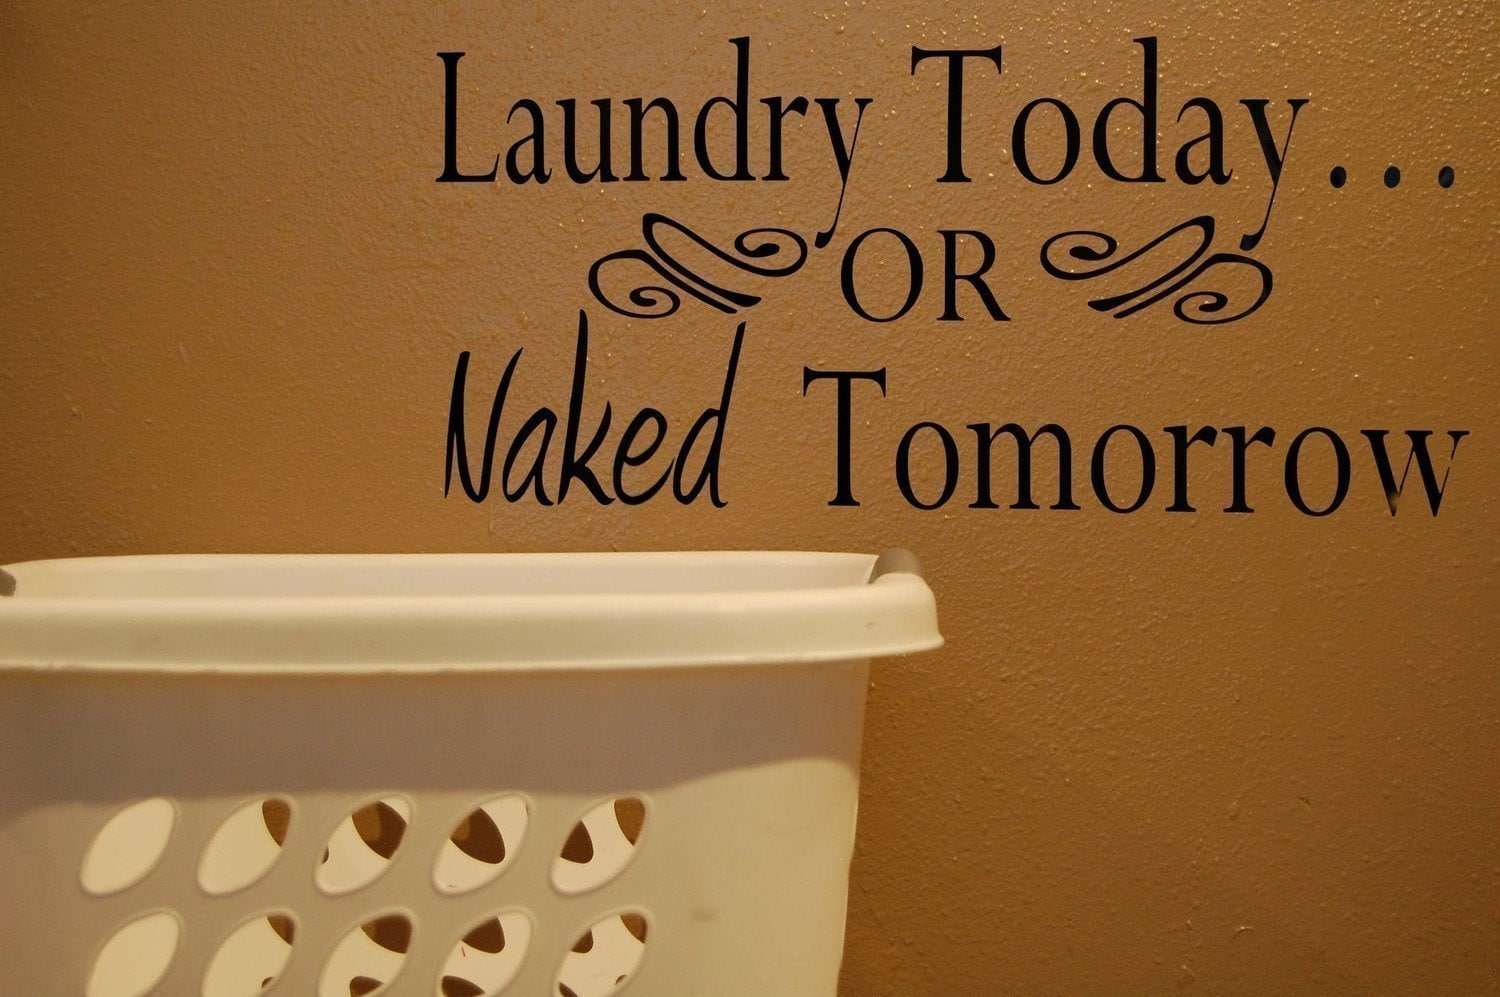 Laundry Today Or Naked Tomorrow Vinyl Decal